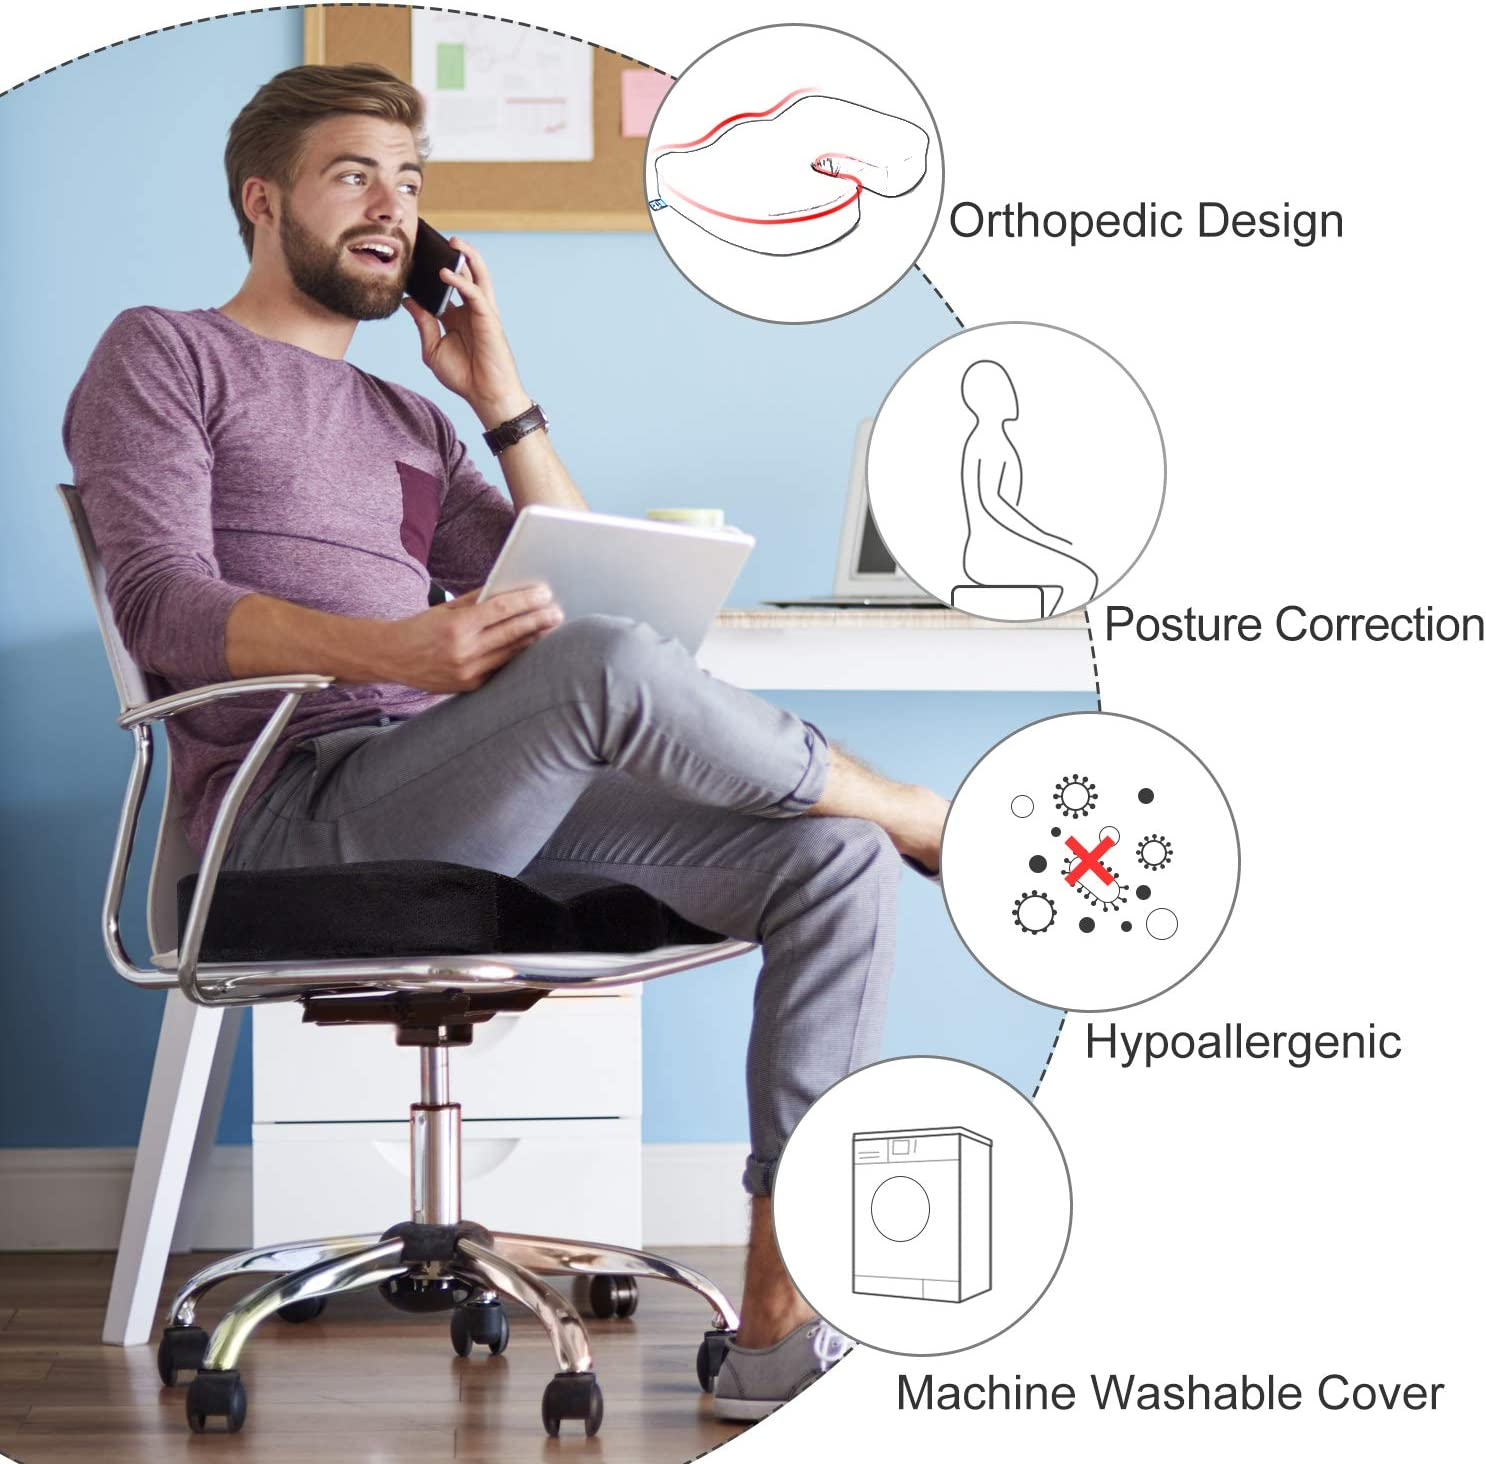 BedStory Office Seat Cushion for Tailbone Back Butt Pain Relief, Memory Foam Office Chair Cushion Booster to Lift Hips Up, Orthopedic U-Shape Design with 2 Replacement Covers: Home & Kitchen